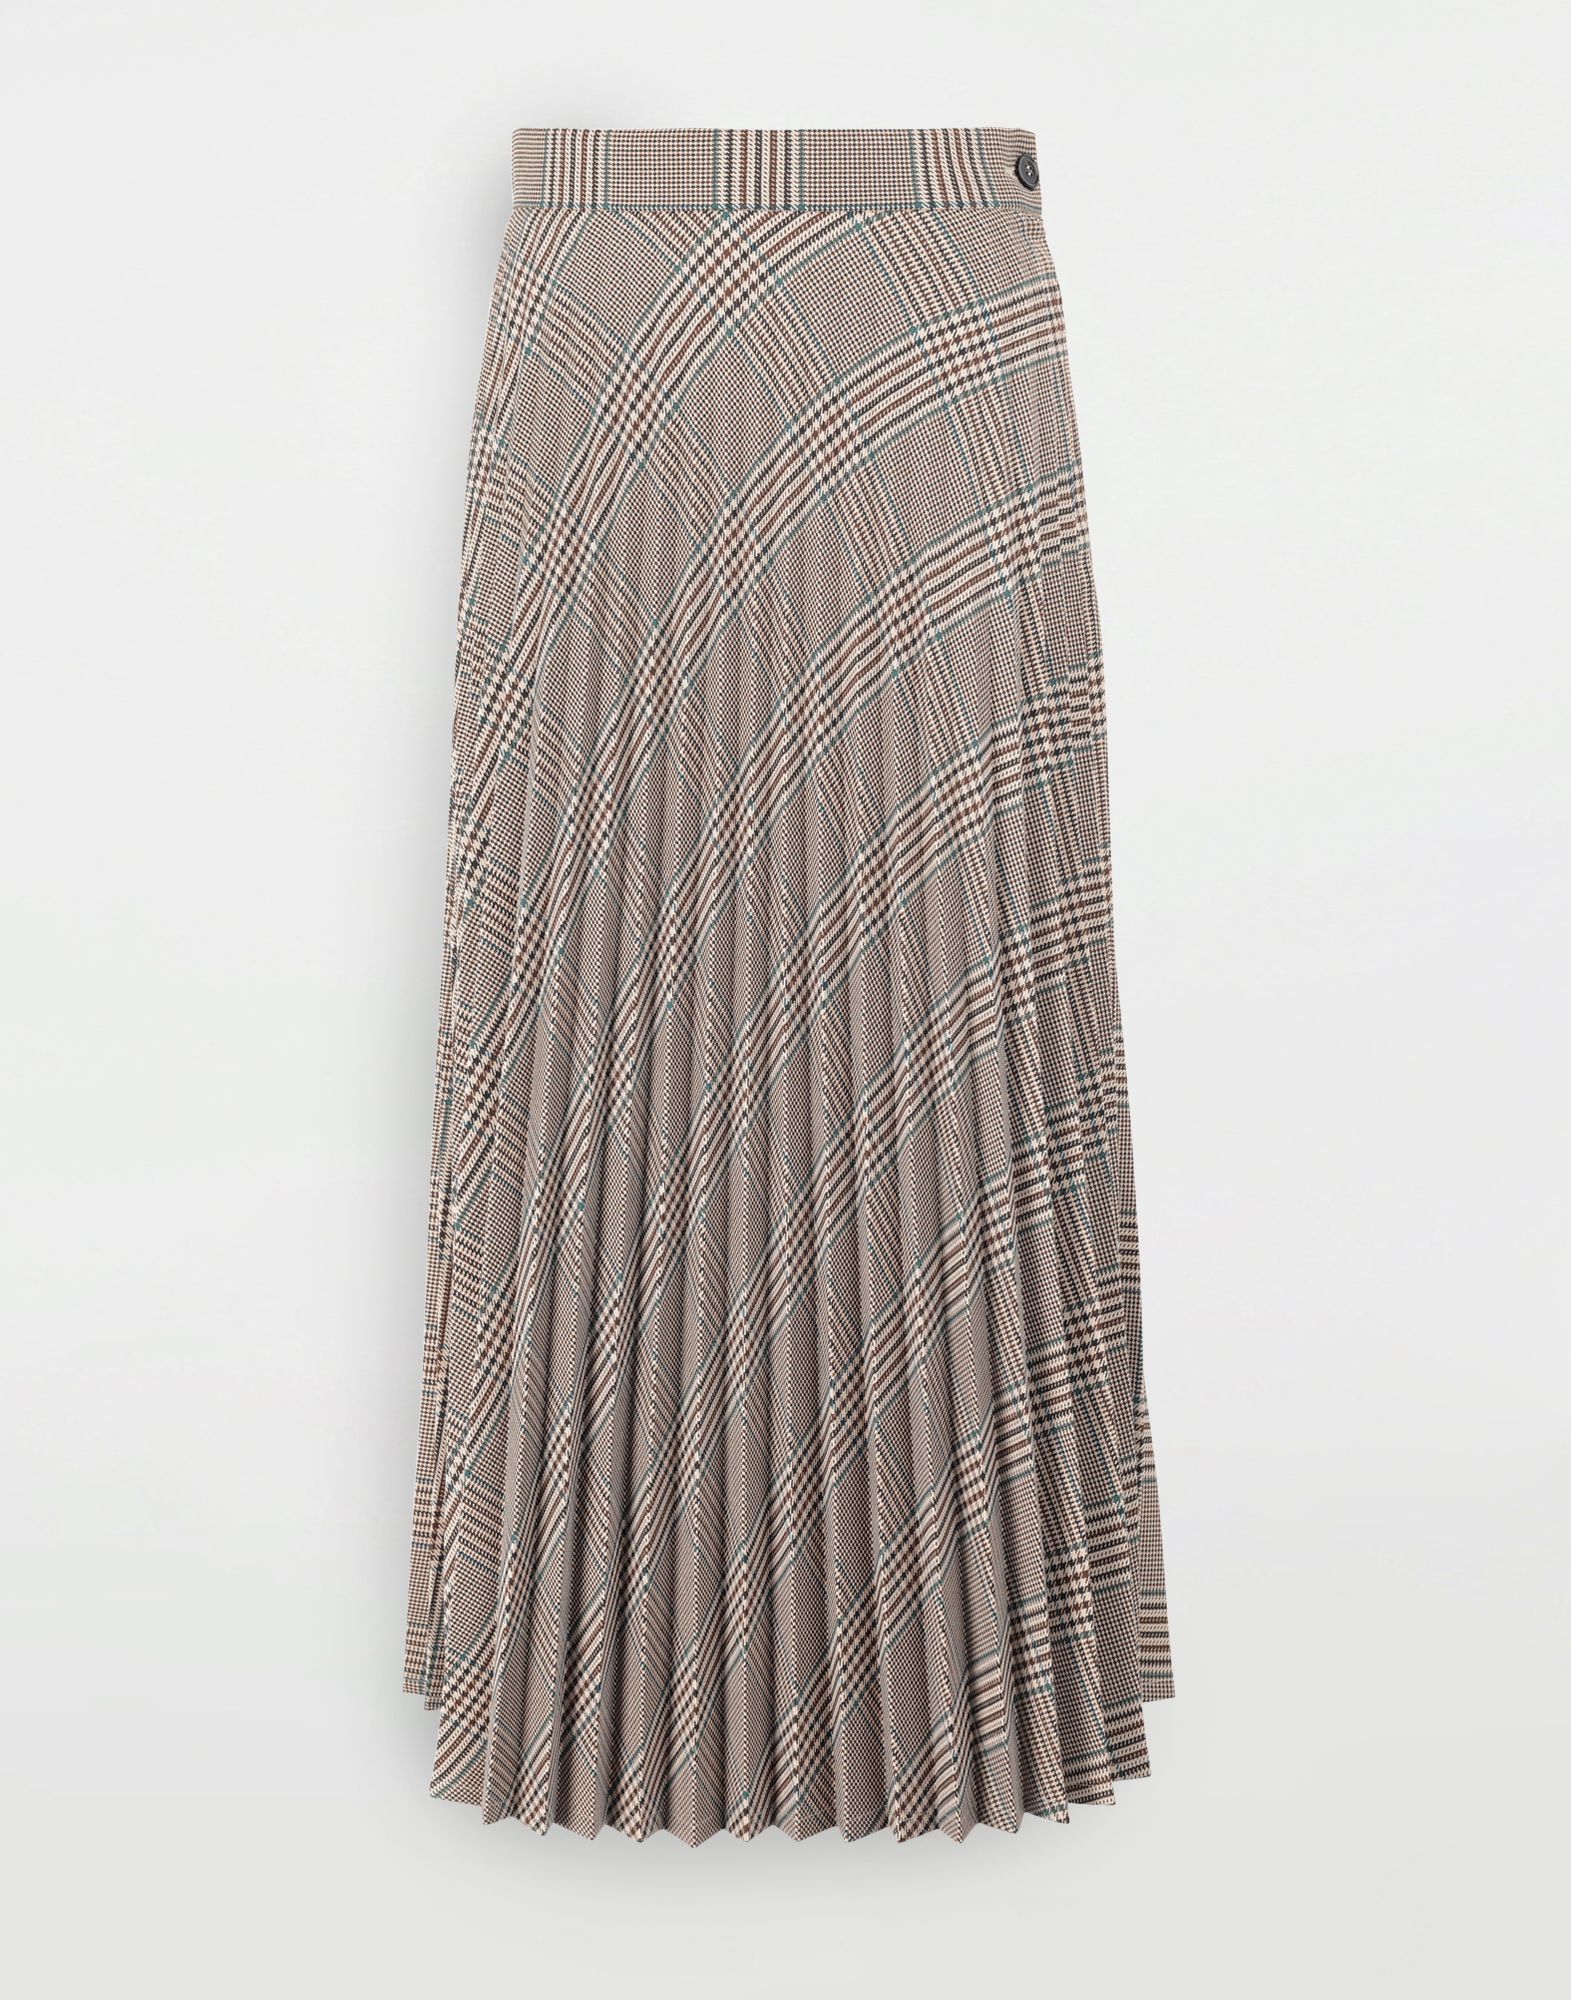 MM6 MAISON MARGIELA Checked pleated skirt Skirt Woman f